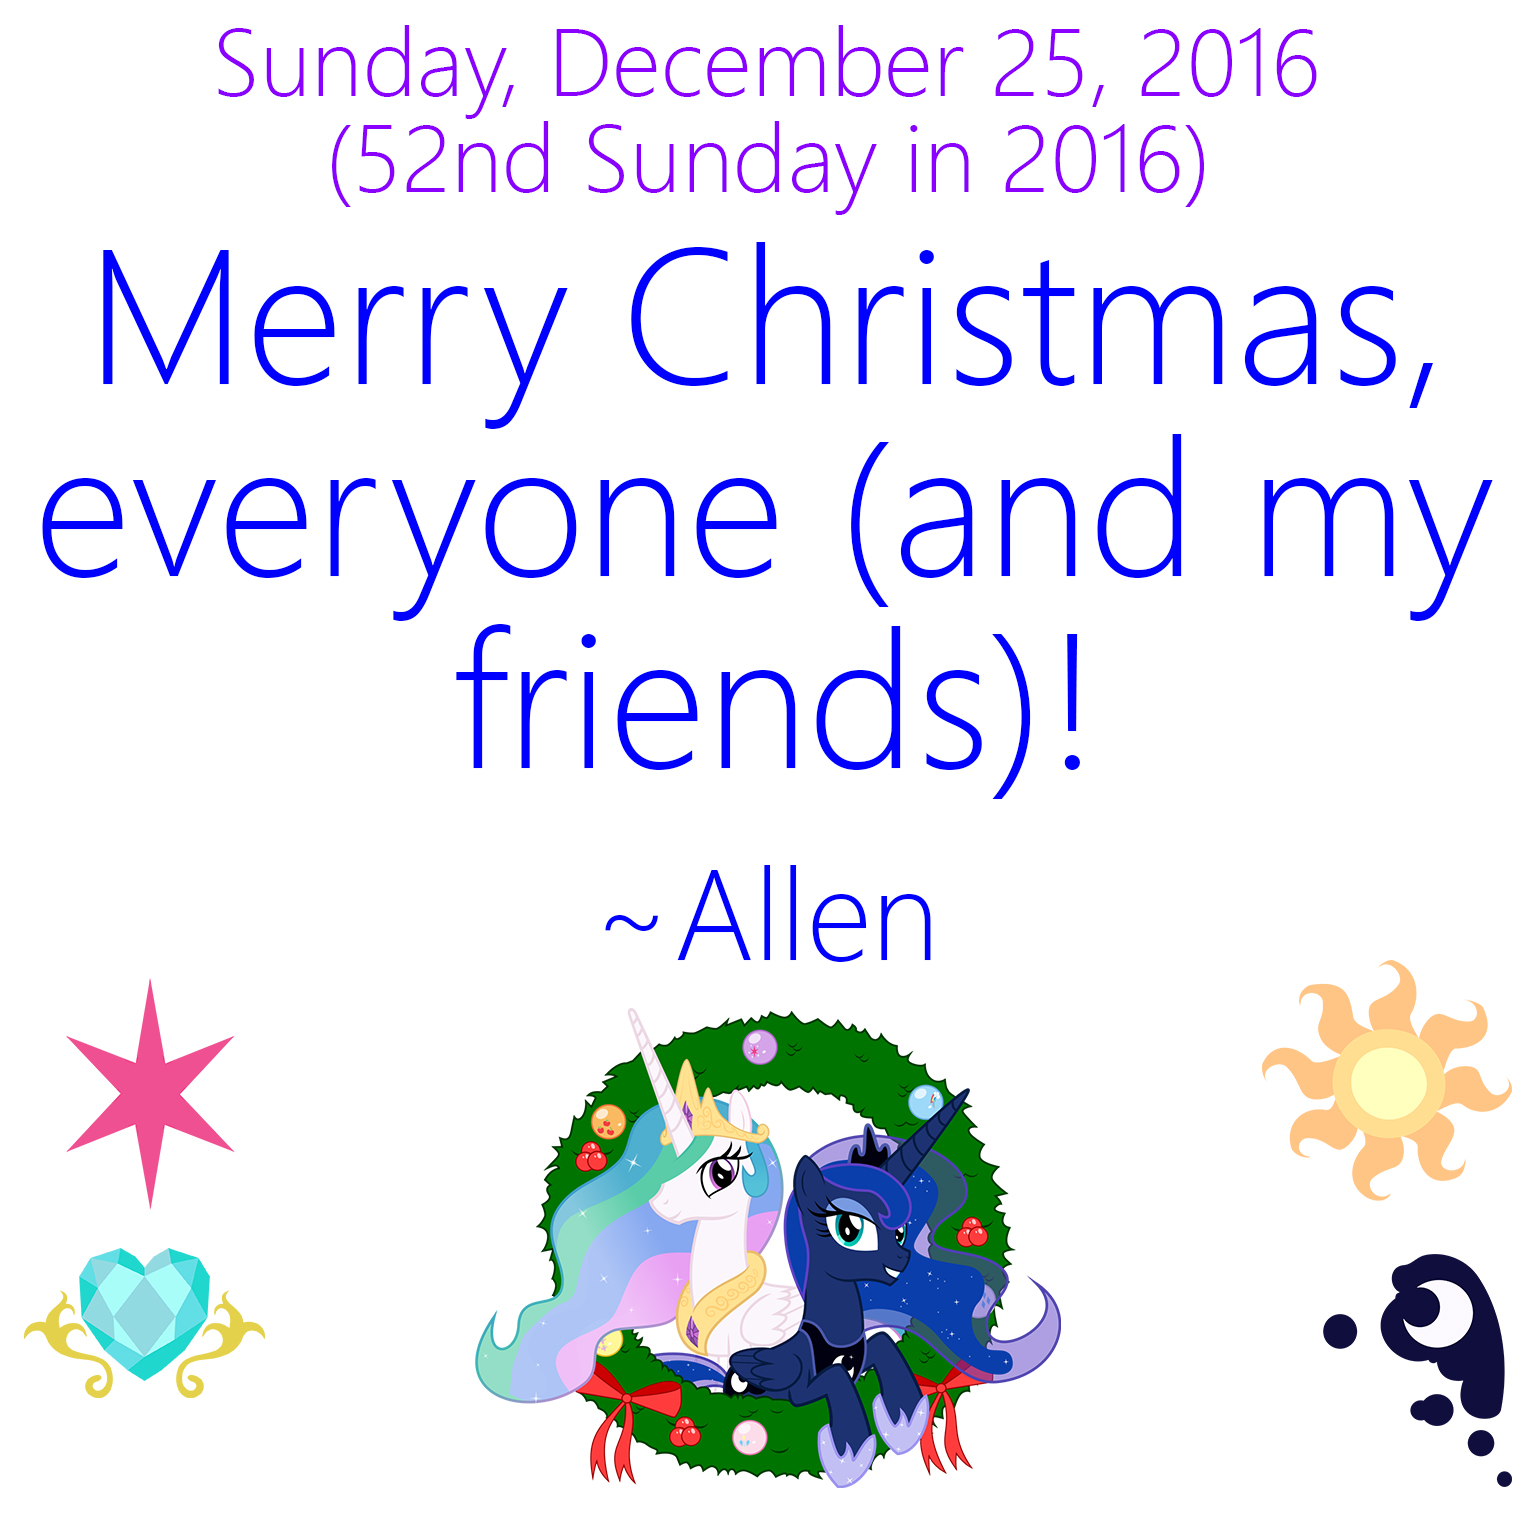 sun__dec_25__2016__christmas_day_by_allenacnguyen-daszyg0.jpg